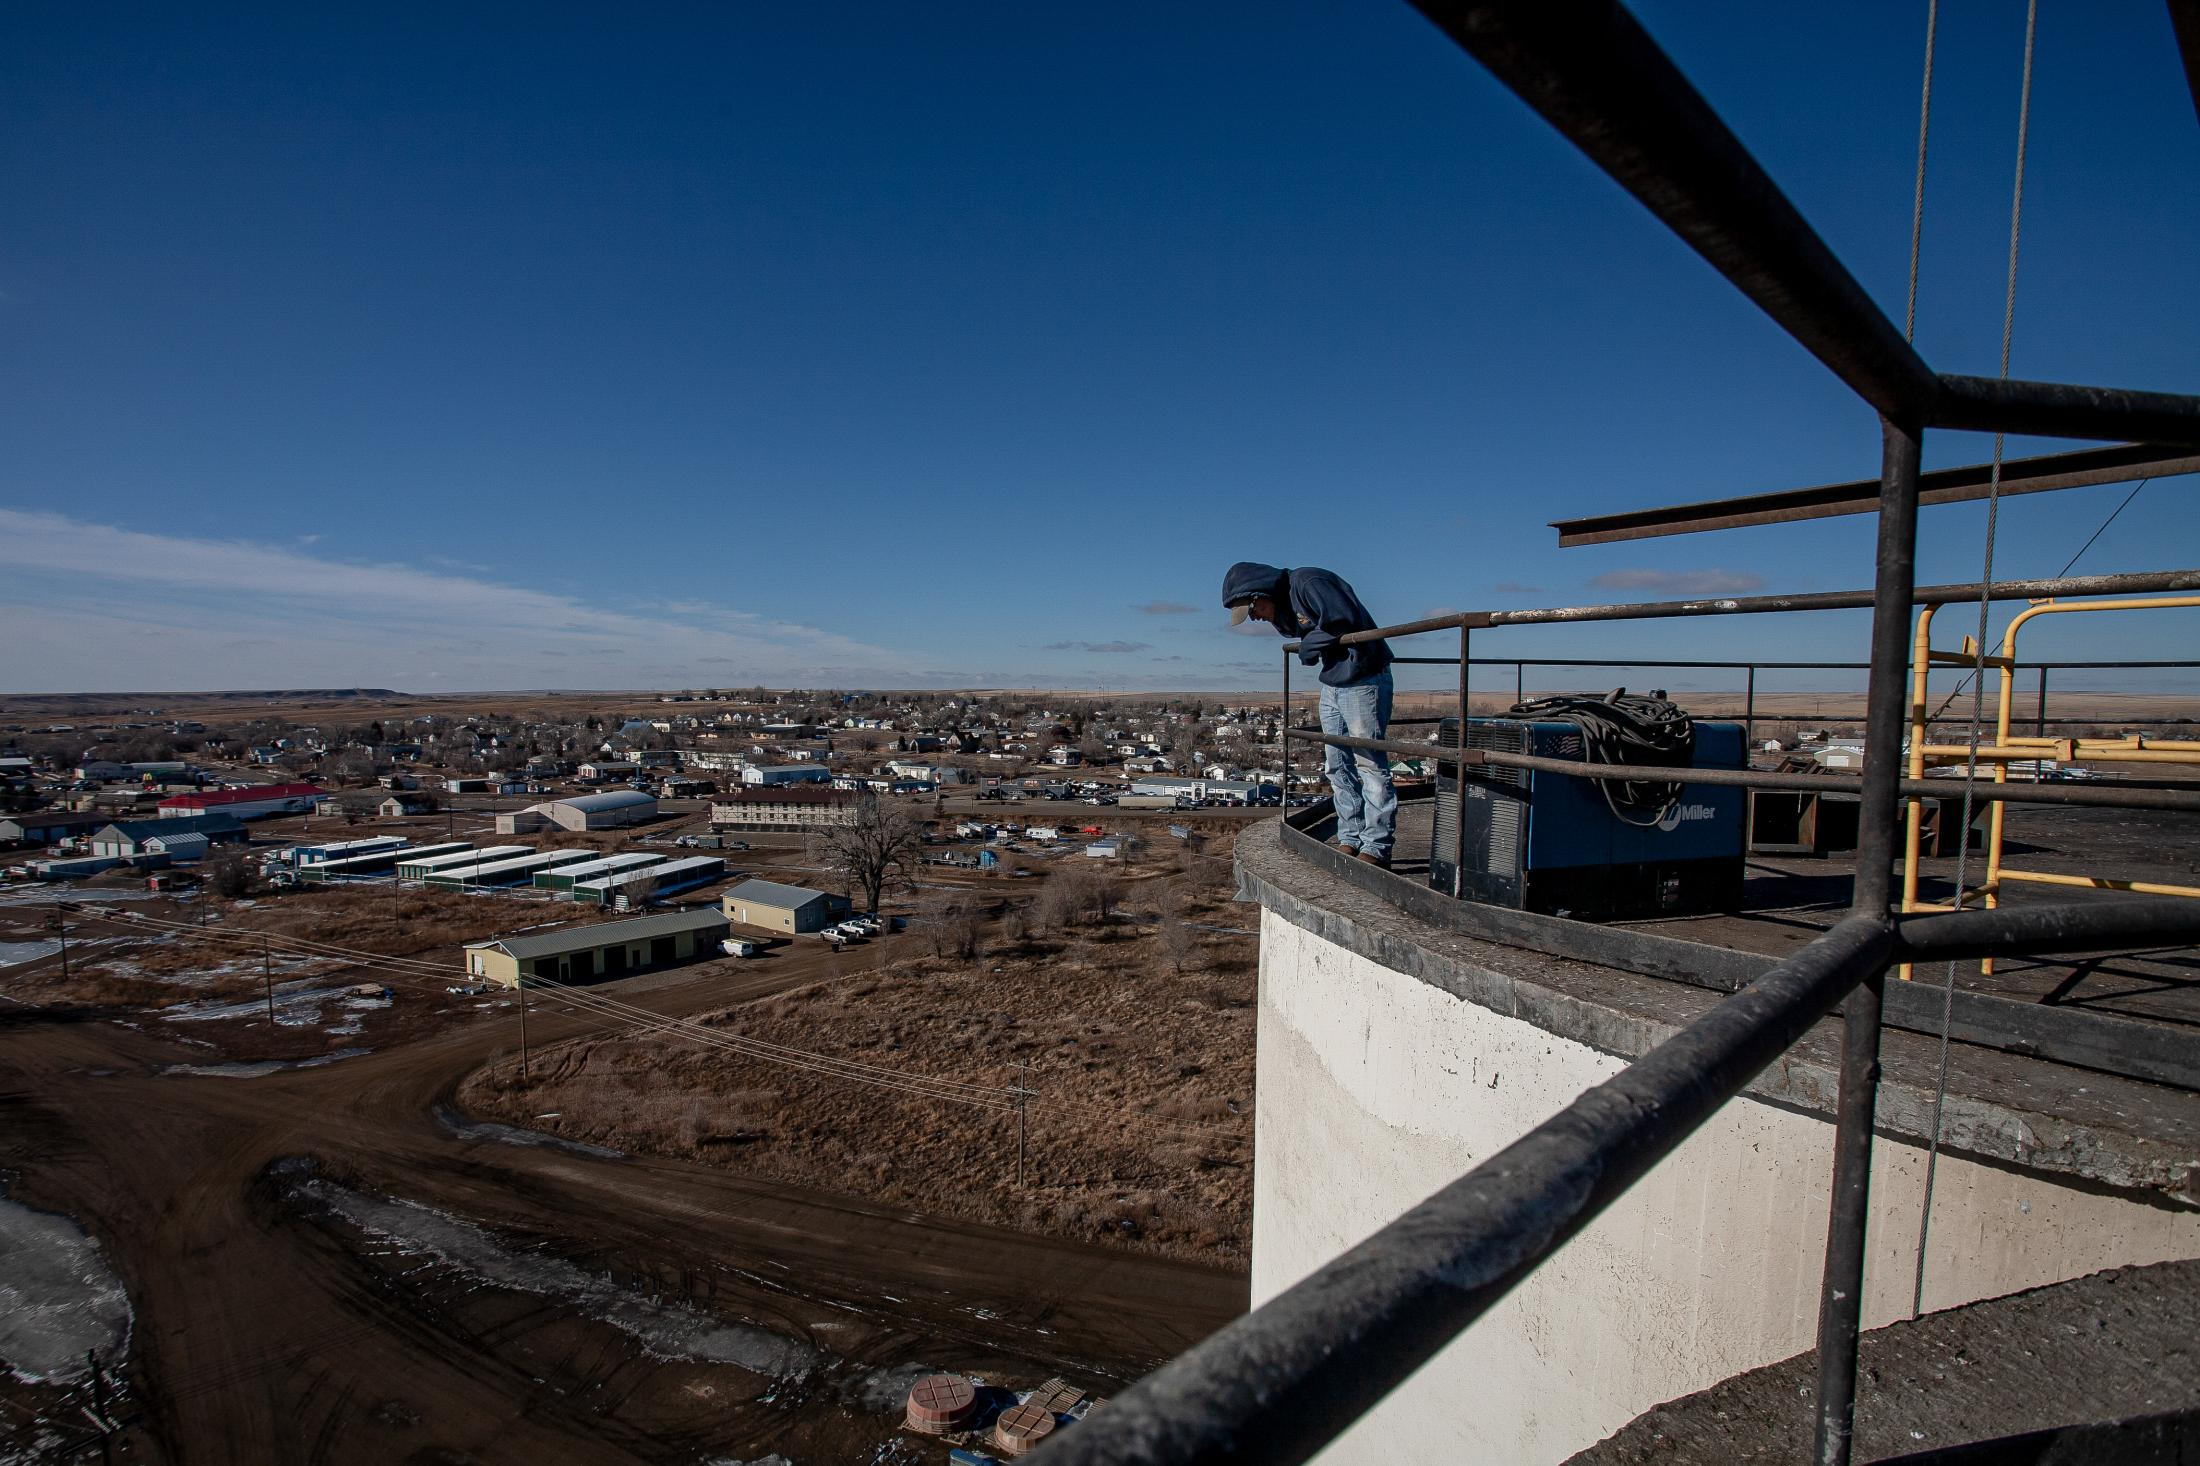 2/20/14- North Dakota - A Sioux grain worker looks down from a grain silo next door to a frac sand storage lot. With little opportunities on the Wolf Point reservation, oil field work is a desired occupation.